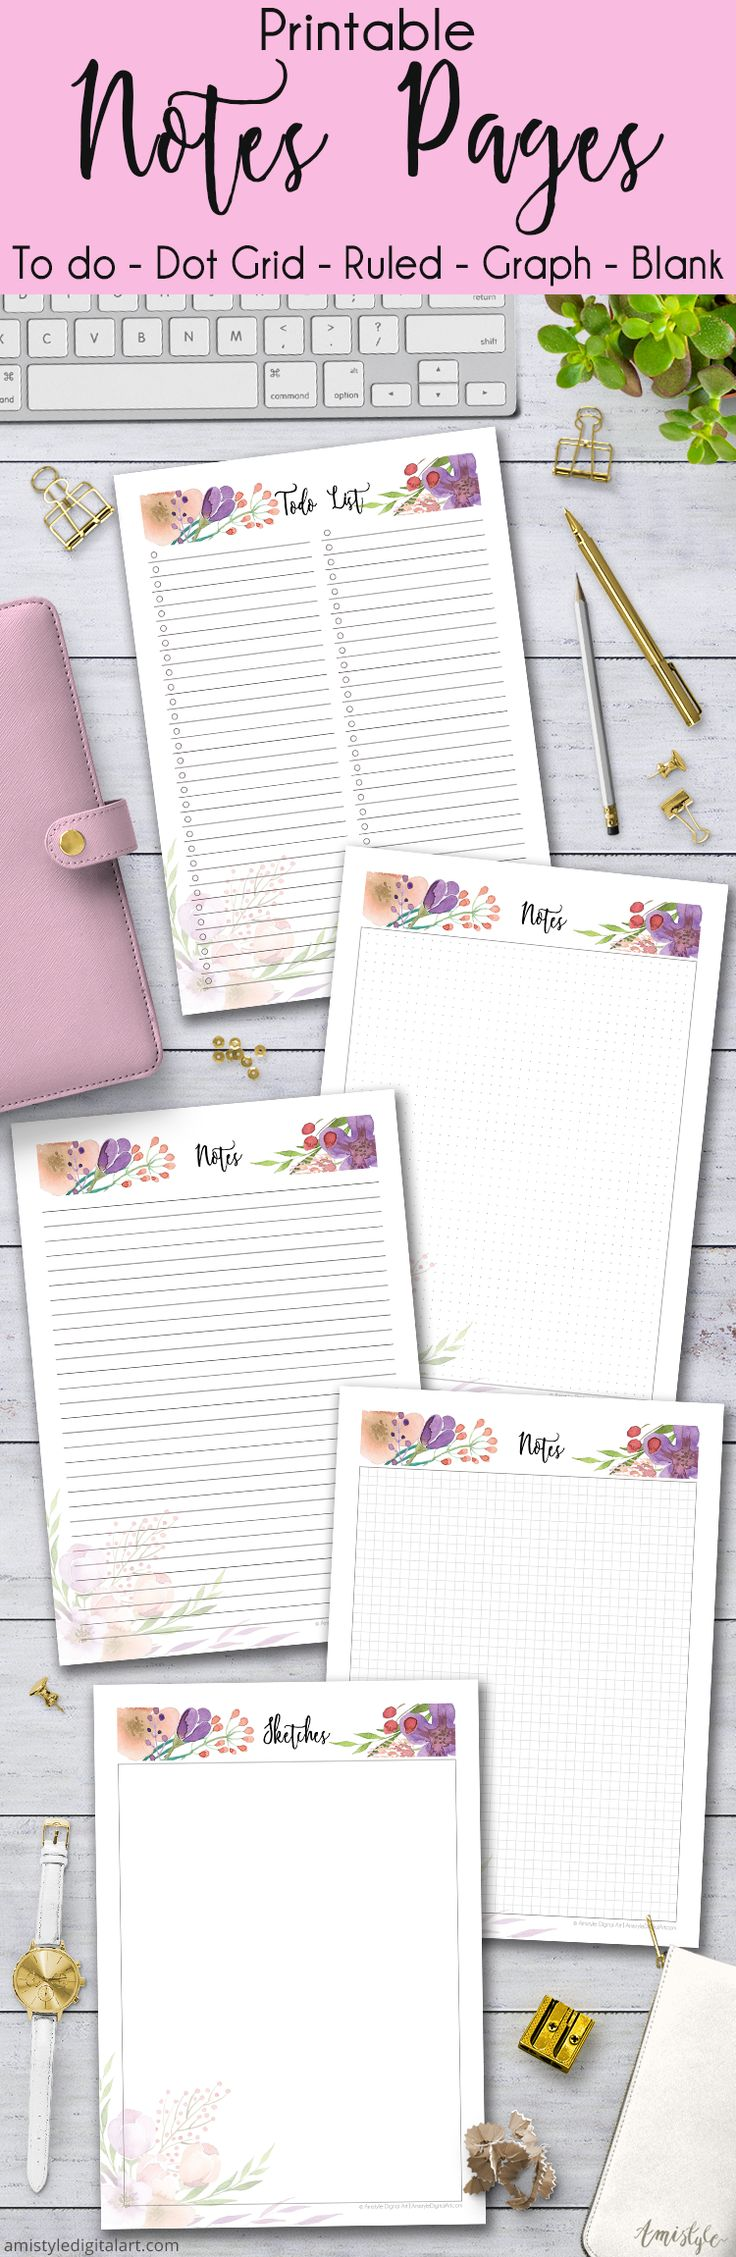 planner,  todo list, to do list,Todo, to do, dot, dotted, dot grid, ruled, graph, blank, sketch, sketches,  plan, jpg, pdf, printable, note, notes, memo, notebook, schedule, organizer, management, time, work, blogger, business, office, notepad, day, list, event, diary, binder, clipboard, watercolor, stationery, a5, a4, letter, us letter, half letter, paper, planner, planner printables, printable planner, business diary, business, agenda, planner refill, refill, schedule, planner pages…